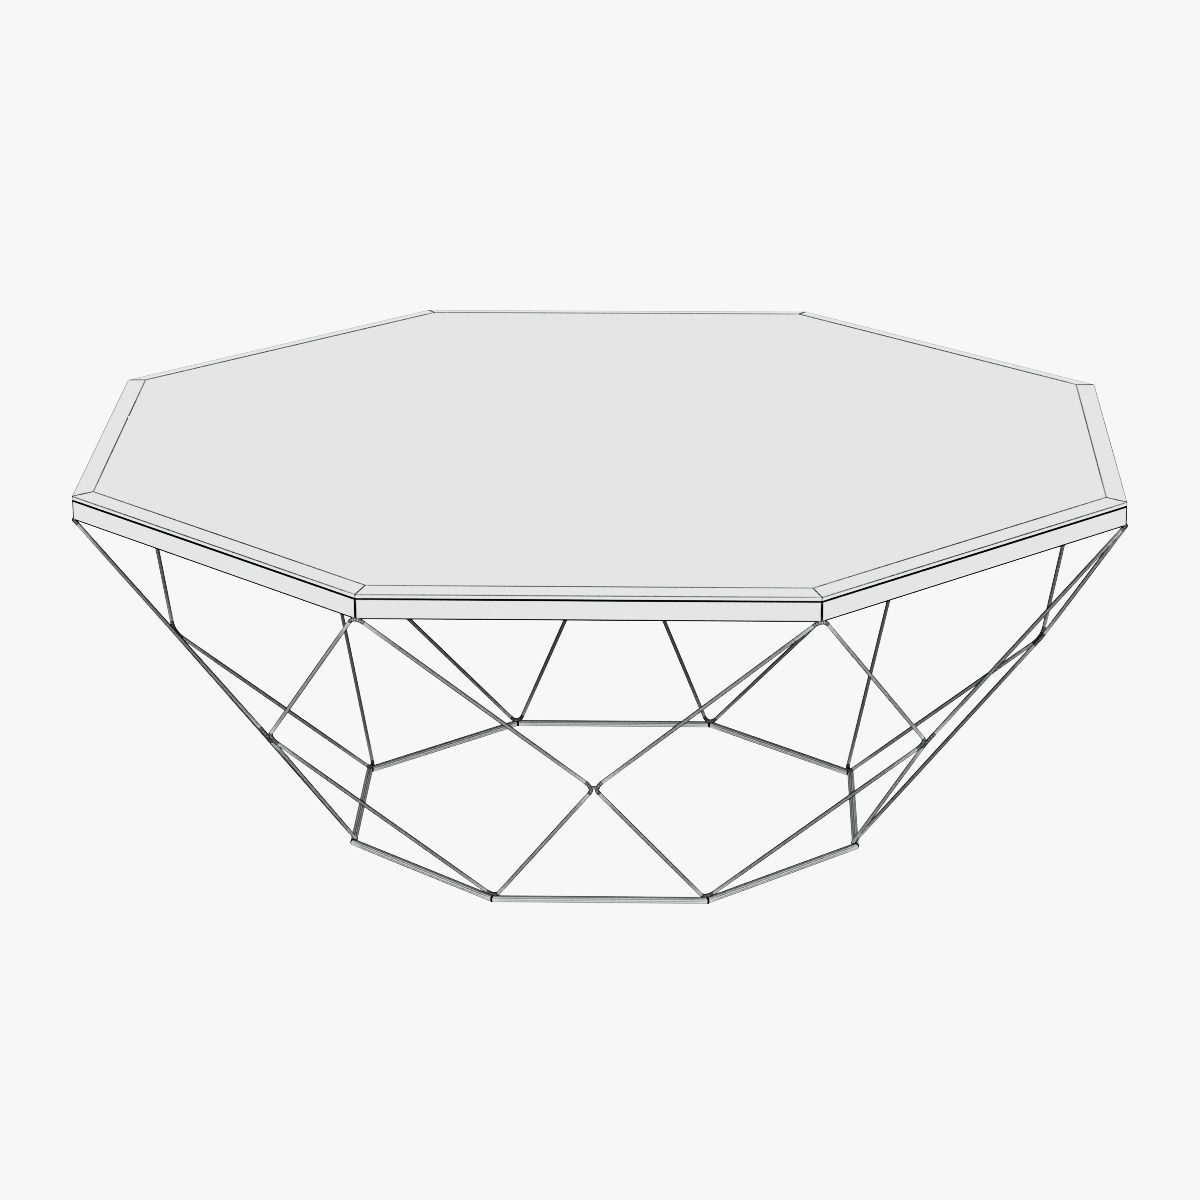 1200x1200 Geometric Antique Brass Coffee Table With Glass Top 3d Model Max